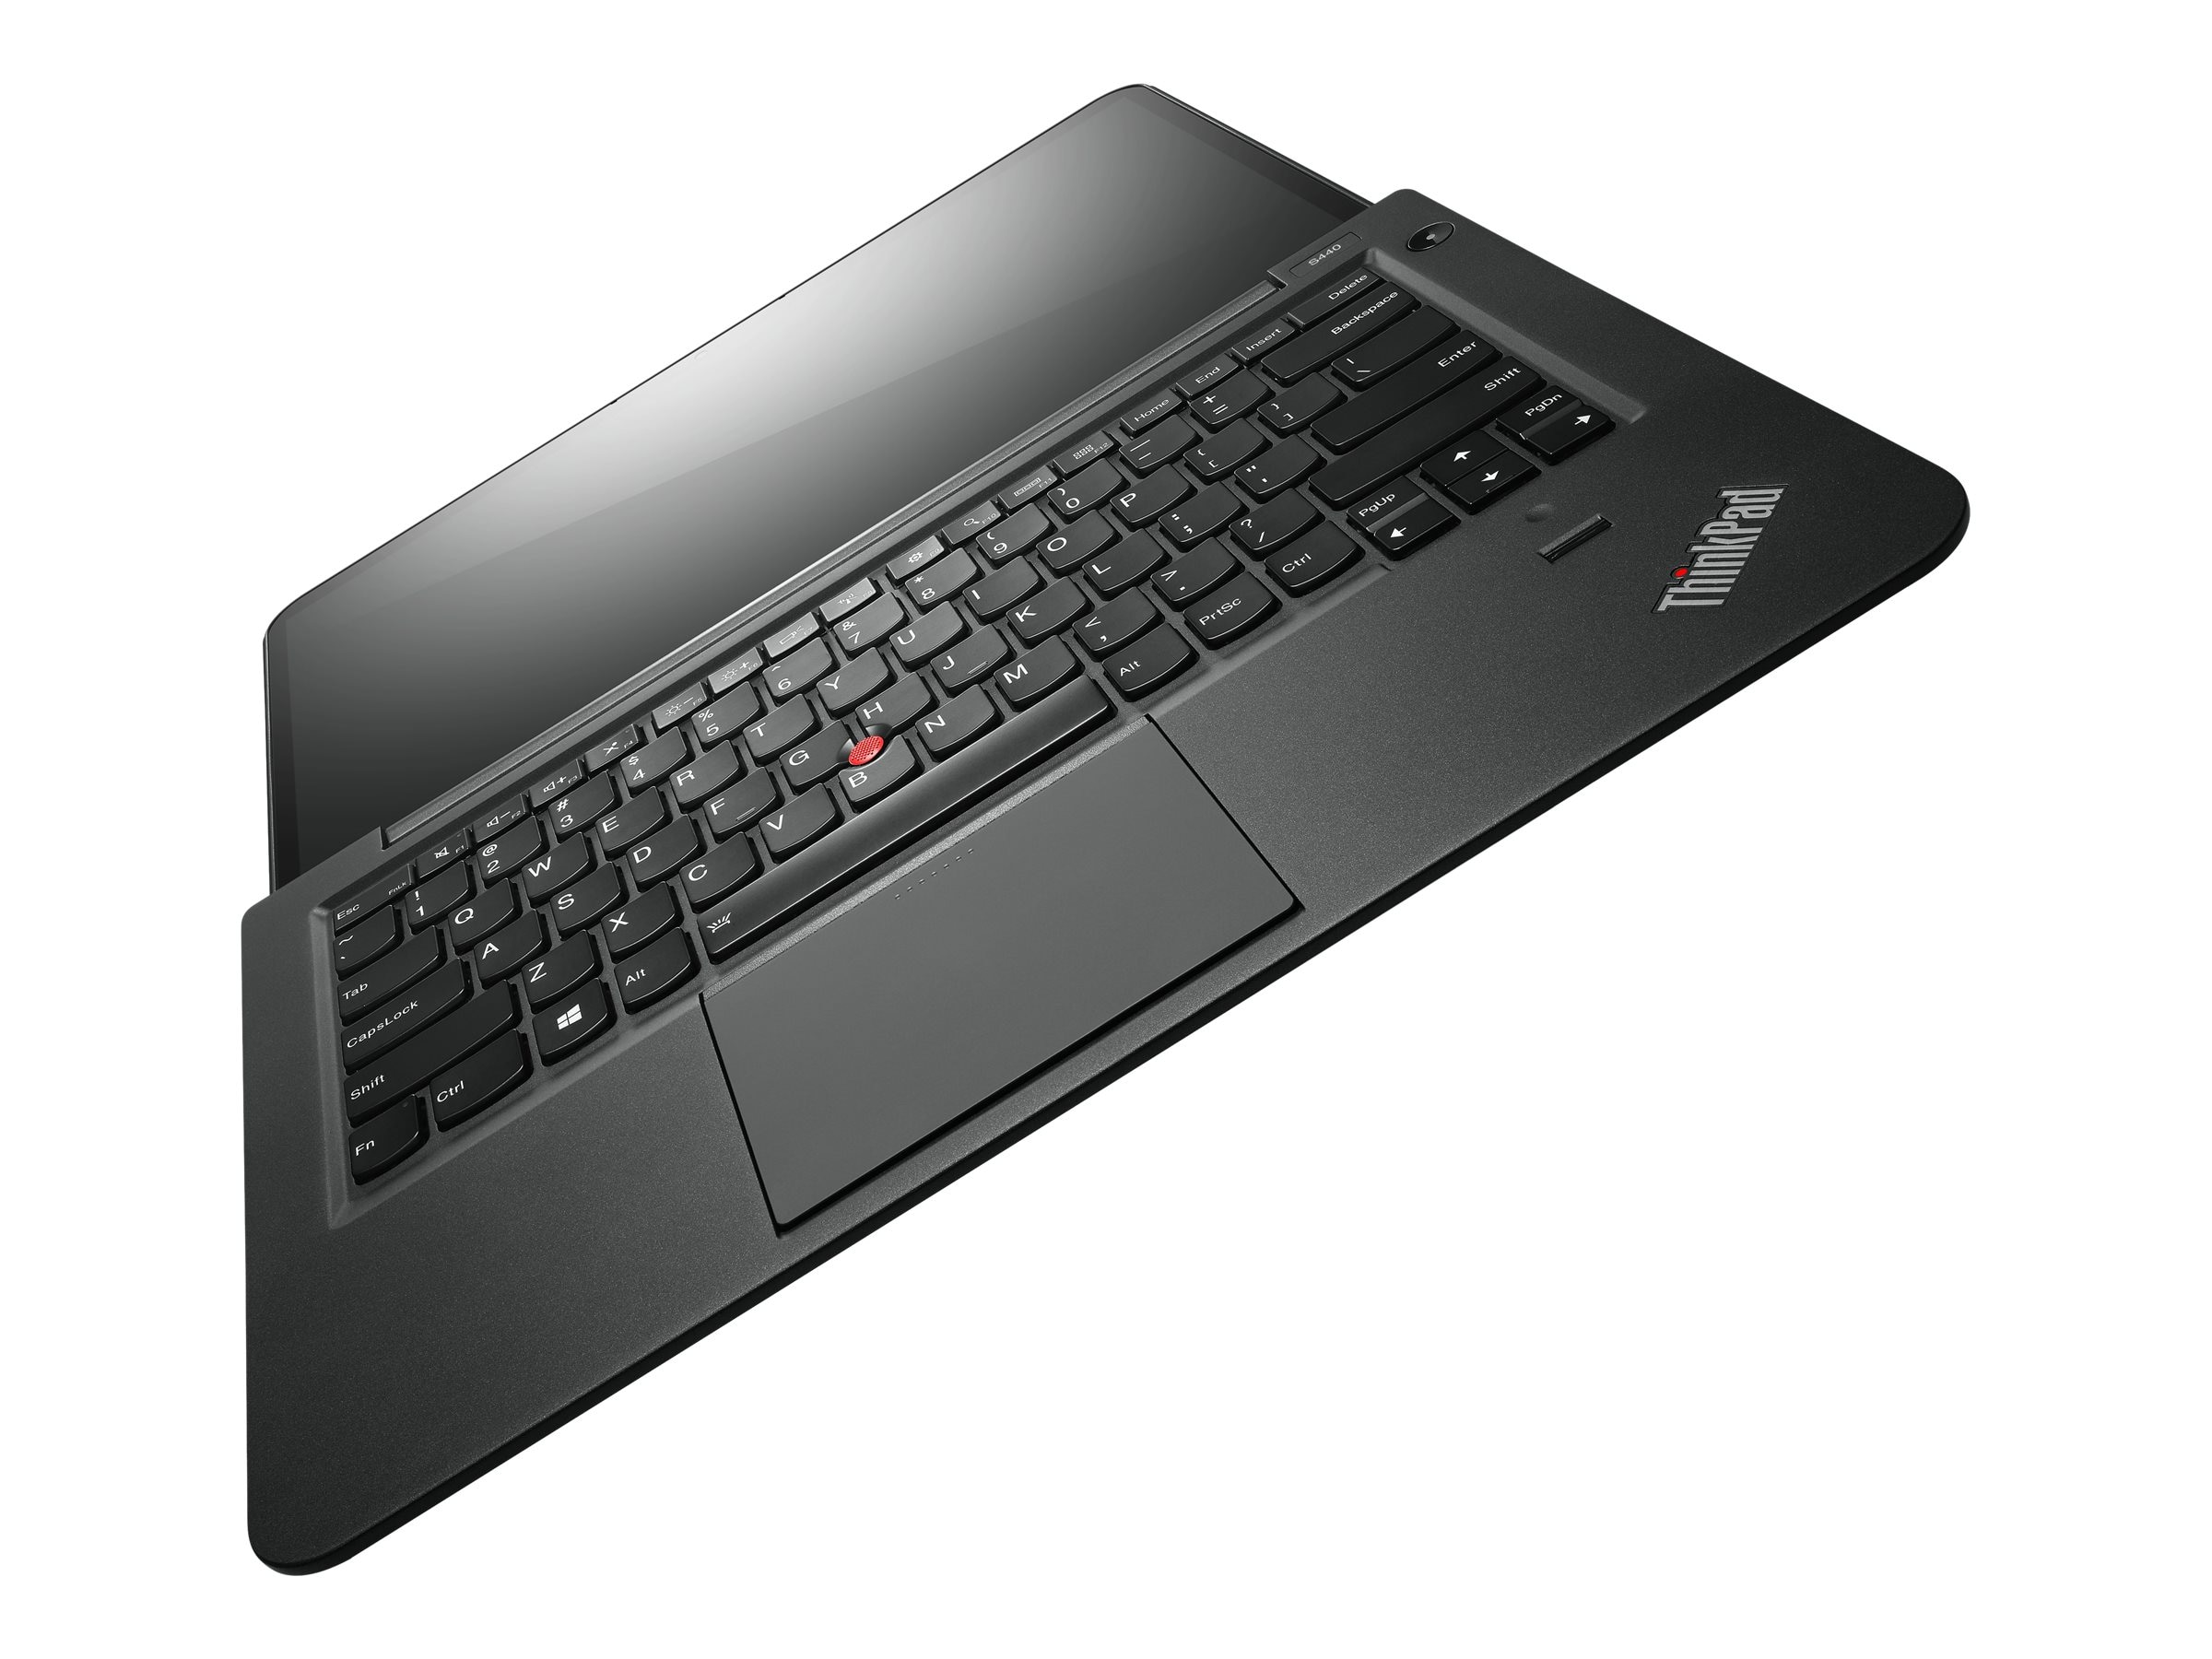 Lenovo TopSeller ThinkPad L440 2.6GHz Core i5 14in display, 20AT002XUS